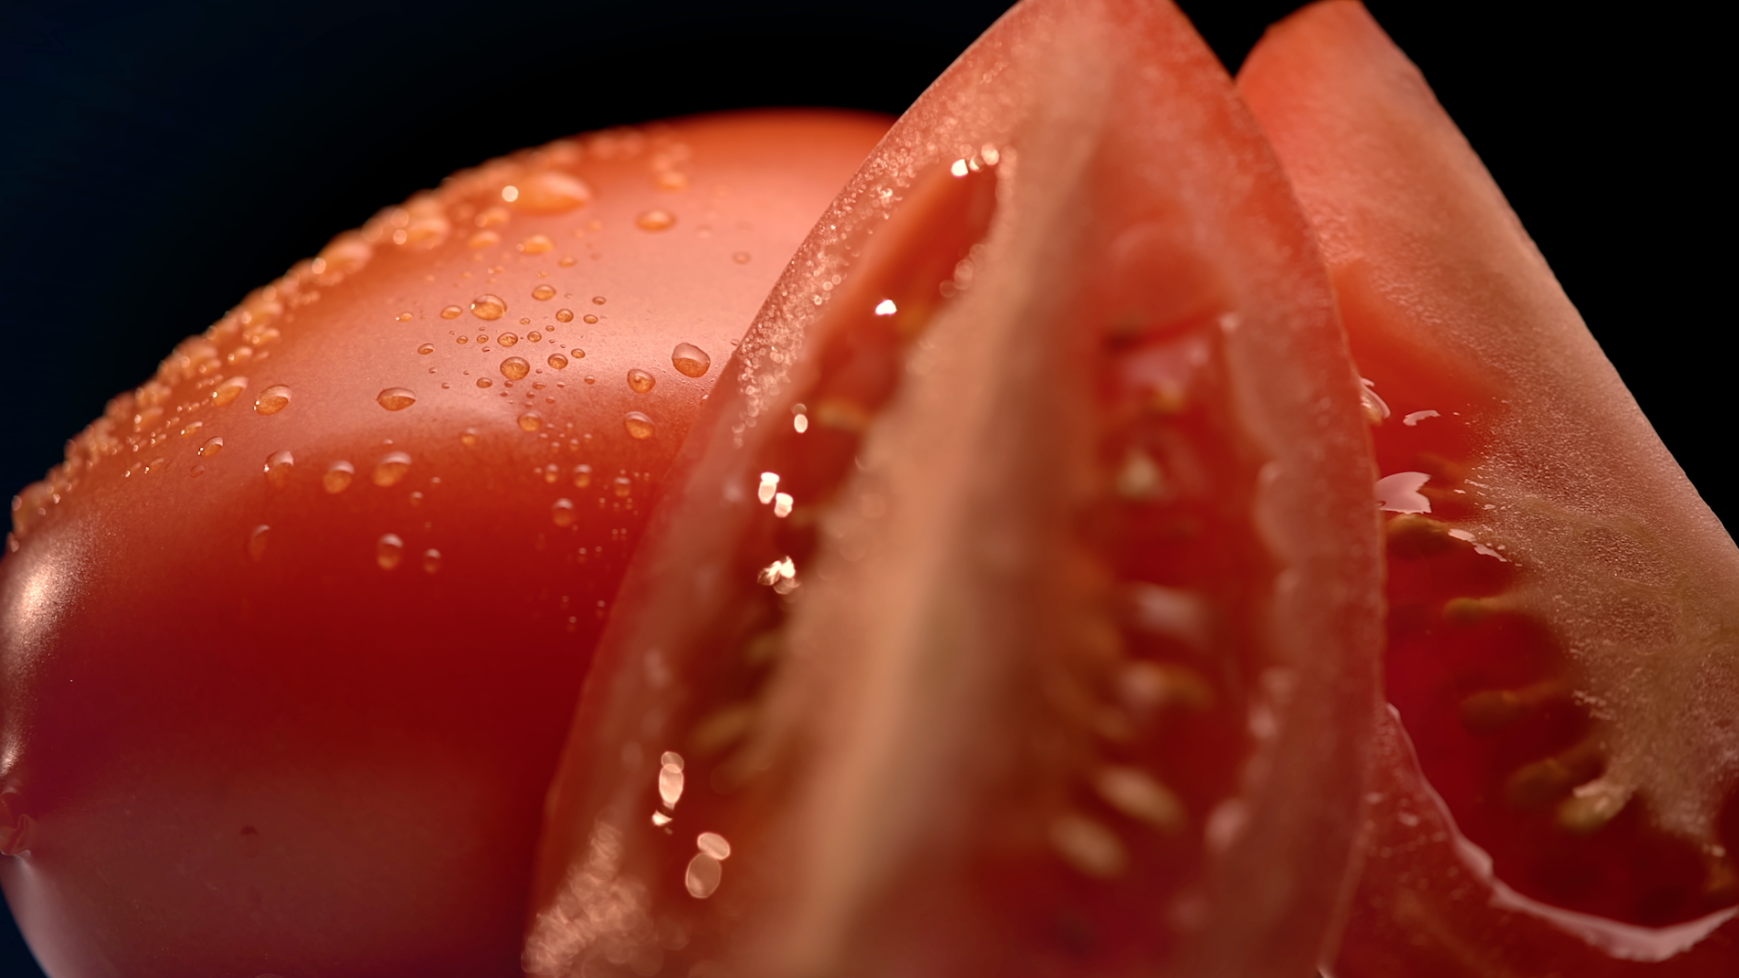 Taylor Vieger macro food photography 2019 Fresh Tomatoes.png